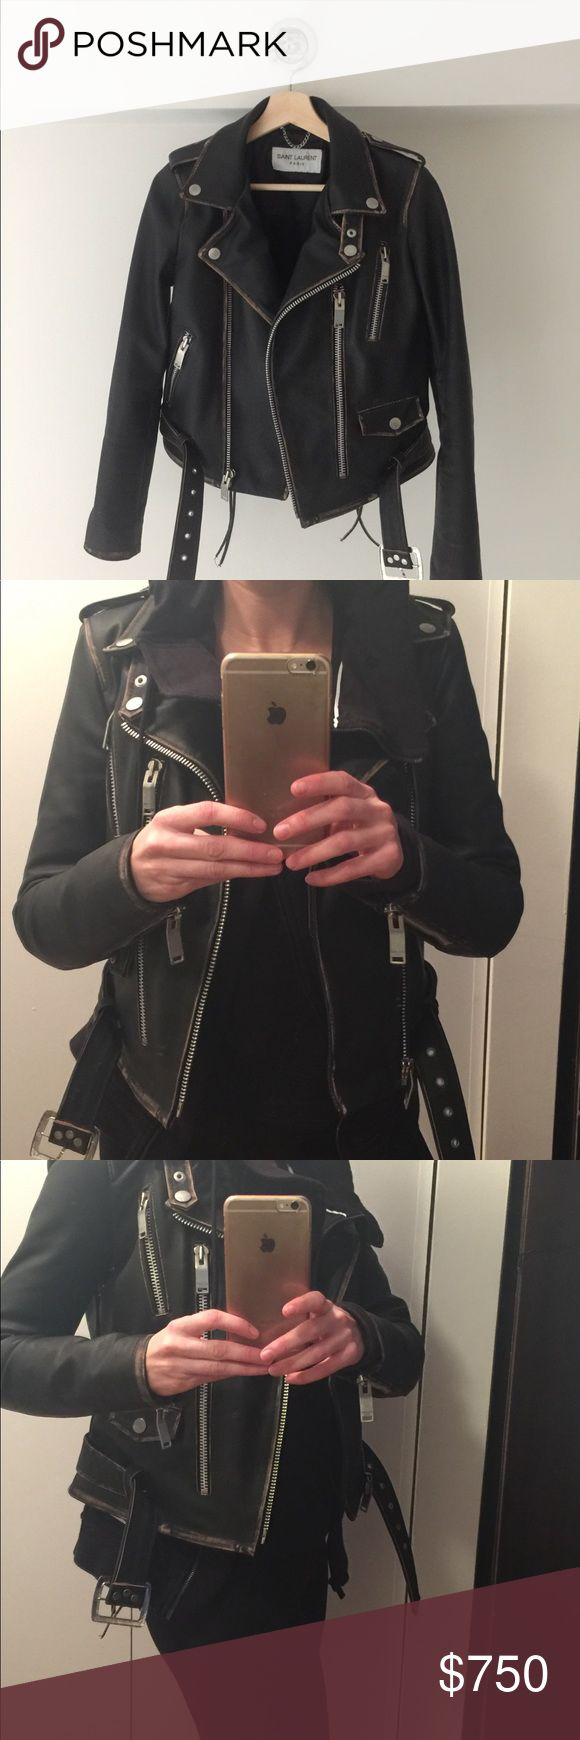 Saint Laurent 100% Lambskin Leather Jacket $4950 Purchased at Saint Laurent Designer Sample Sale held at Soiffer Haskin, NYC for $2500. Similar style currently in YSL and Barney's for $4950. Beautiful 100% Lambskin with all Saint Laurent hardware. FR 36/ US 2. True to size. Score for an incredible price, it is unfortunately too small for me:( in beautiful condition, the jacket is meant to be roughed up and distressed further over time. Saint Laurent Jackets & Coats